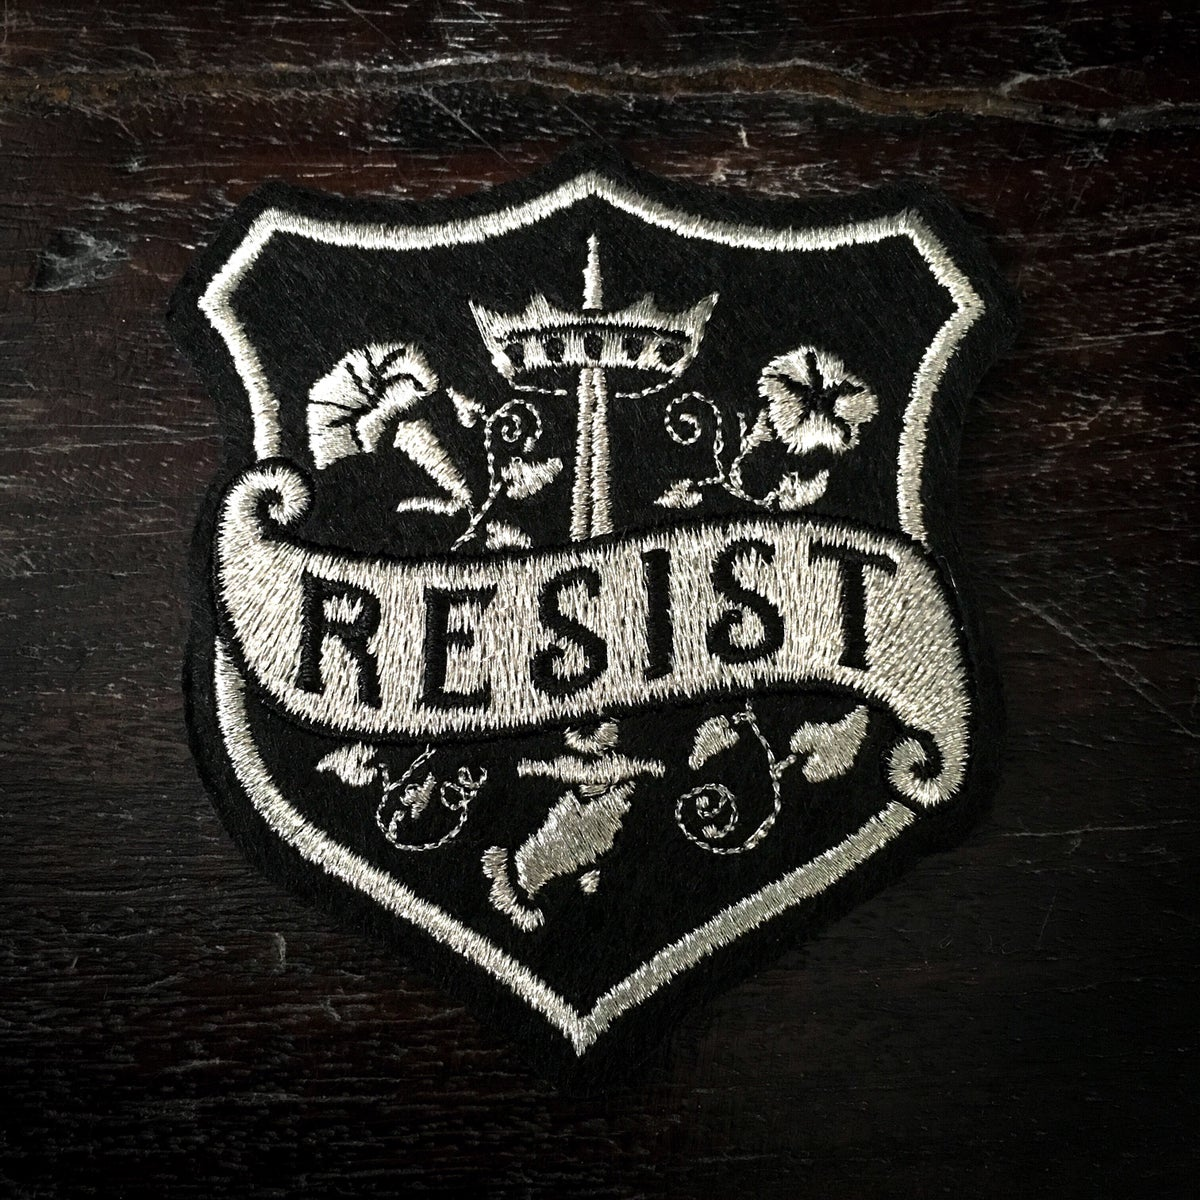 Image of Resistance Insignia patch